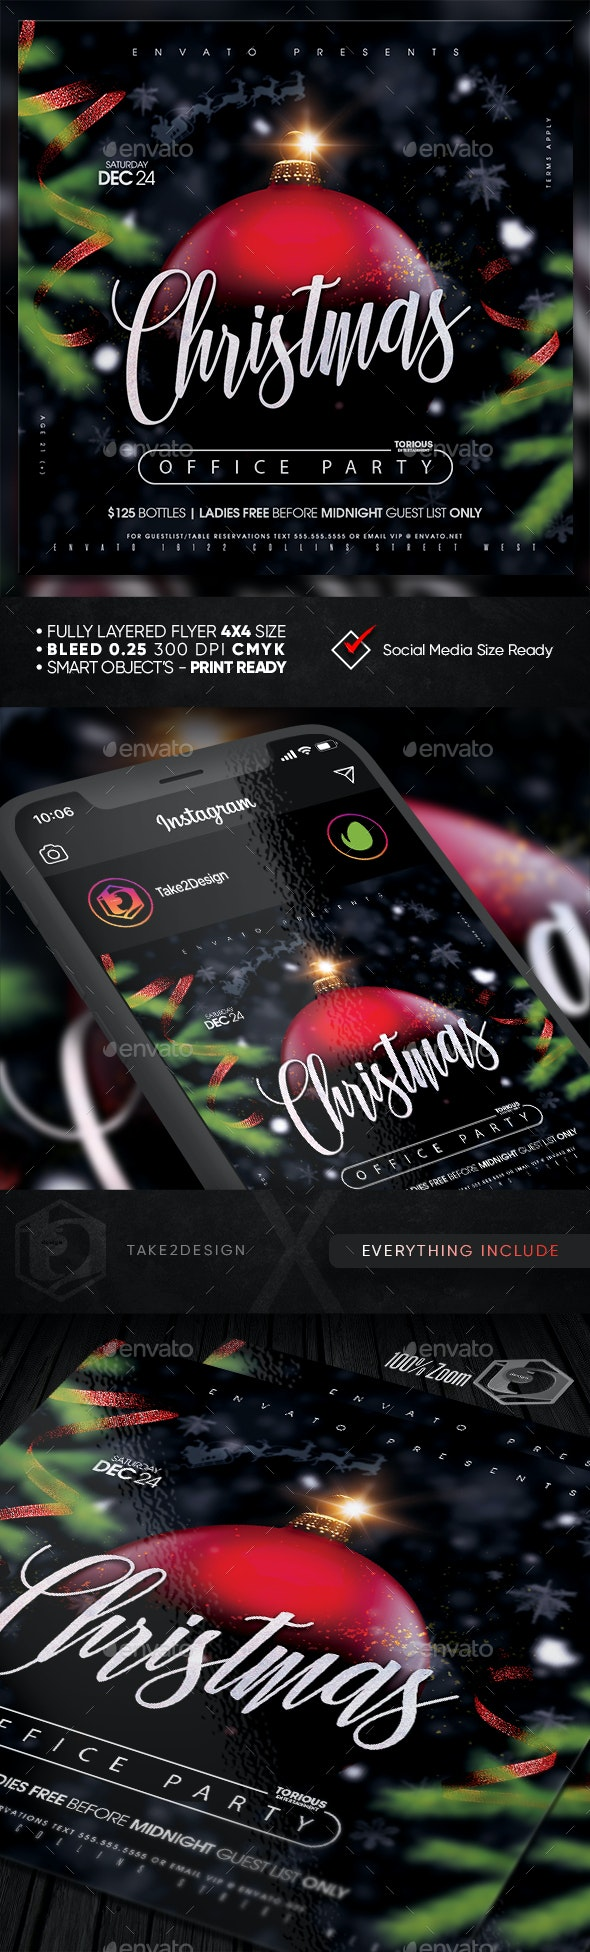 Christmas Office Party Flyer Template - Clubs & Parties Events